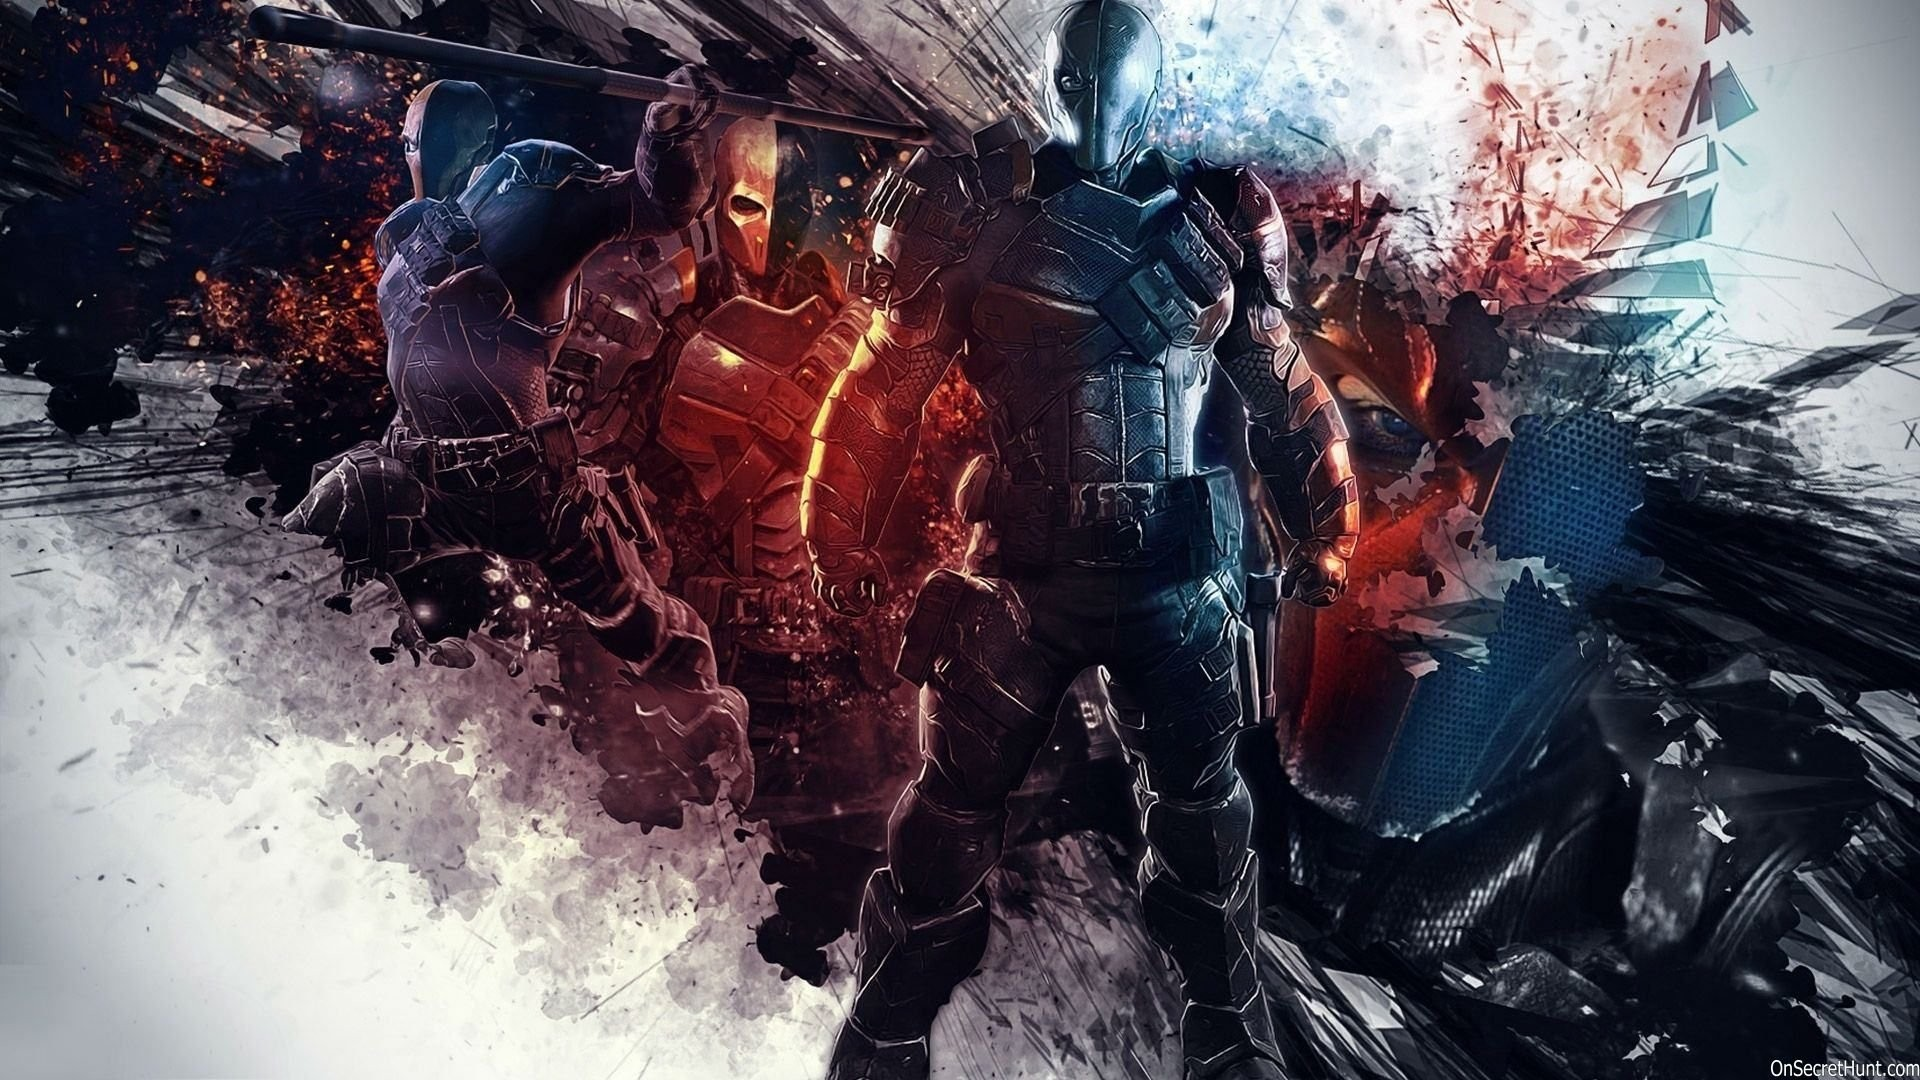 Deathstroke Wallpaper 183 ① Download Free Awesome Full Hd Wallpapers For Desktop Computers And